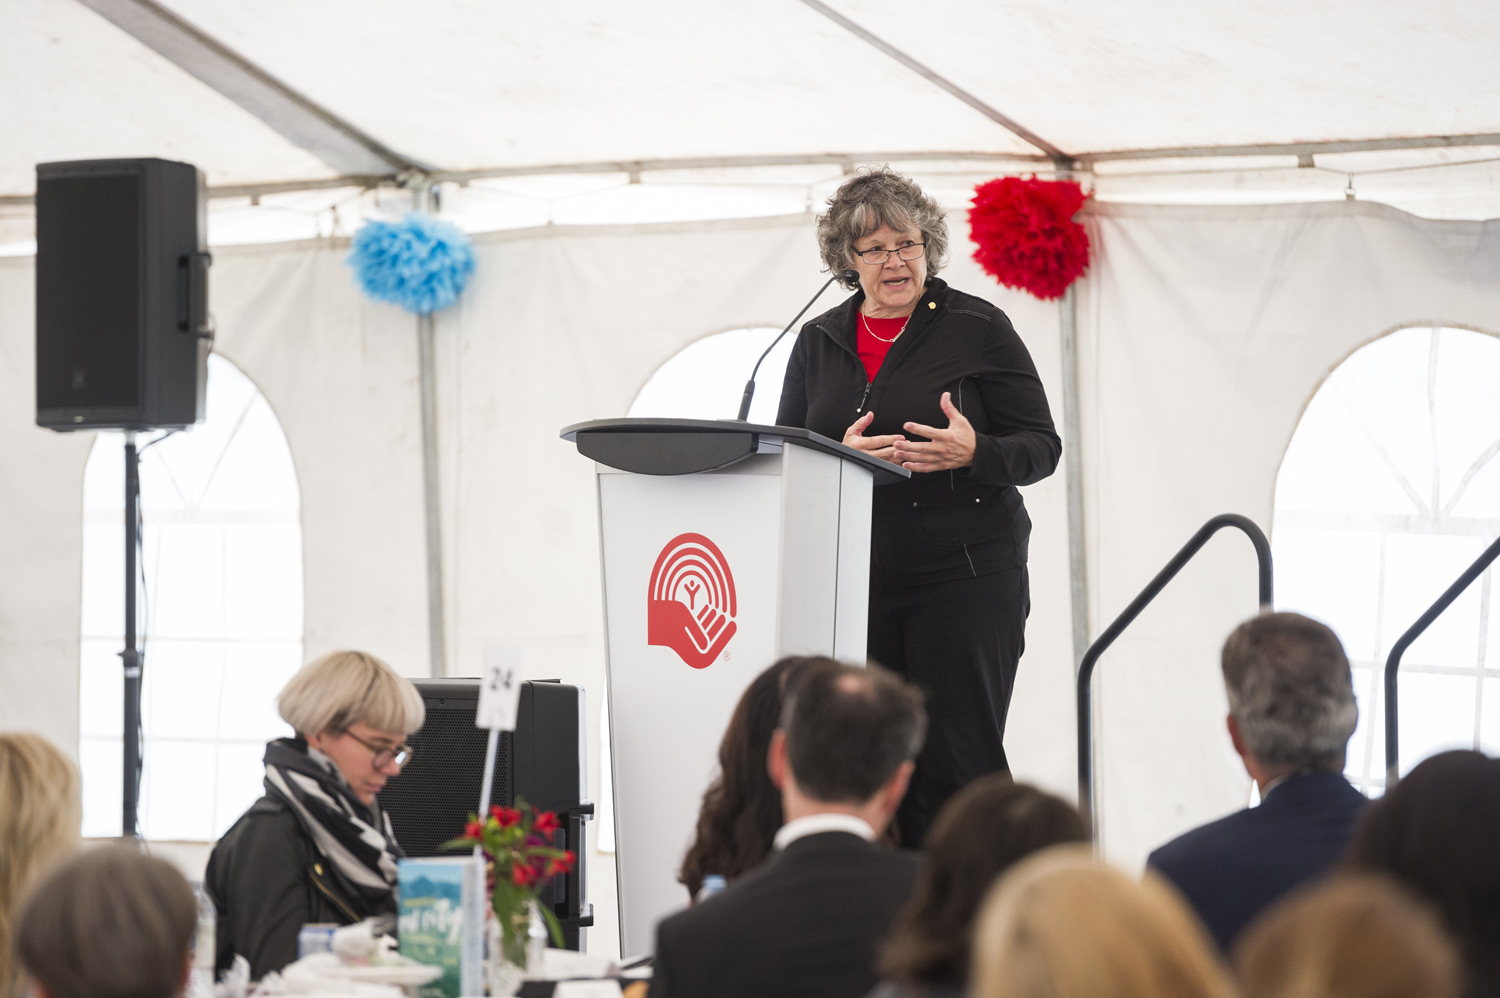 Marilyn McLaren, chair of United Way's volunteer Board of Trustees, gave thanks to the 100+ United Way-supported agency partners doing such critical work in our city.